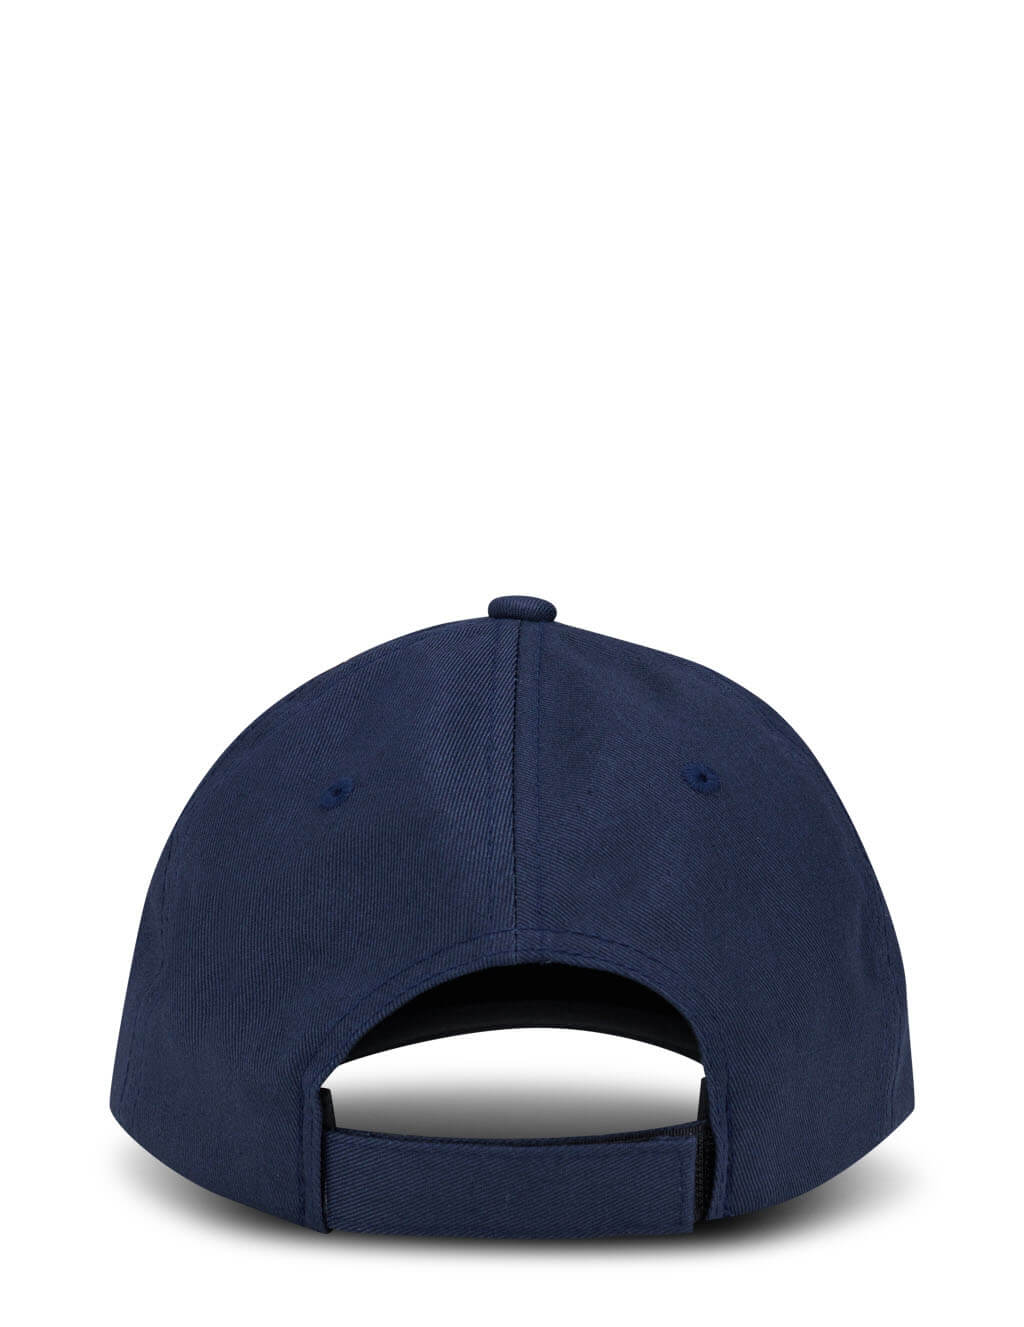 BOSS x Russell Athletic Men's Navy Feagle Cap 50456961 404